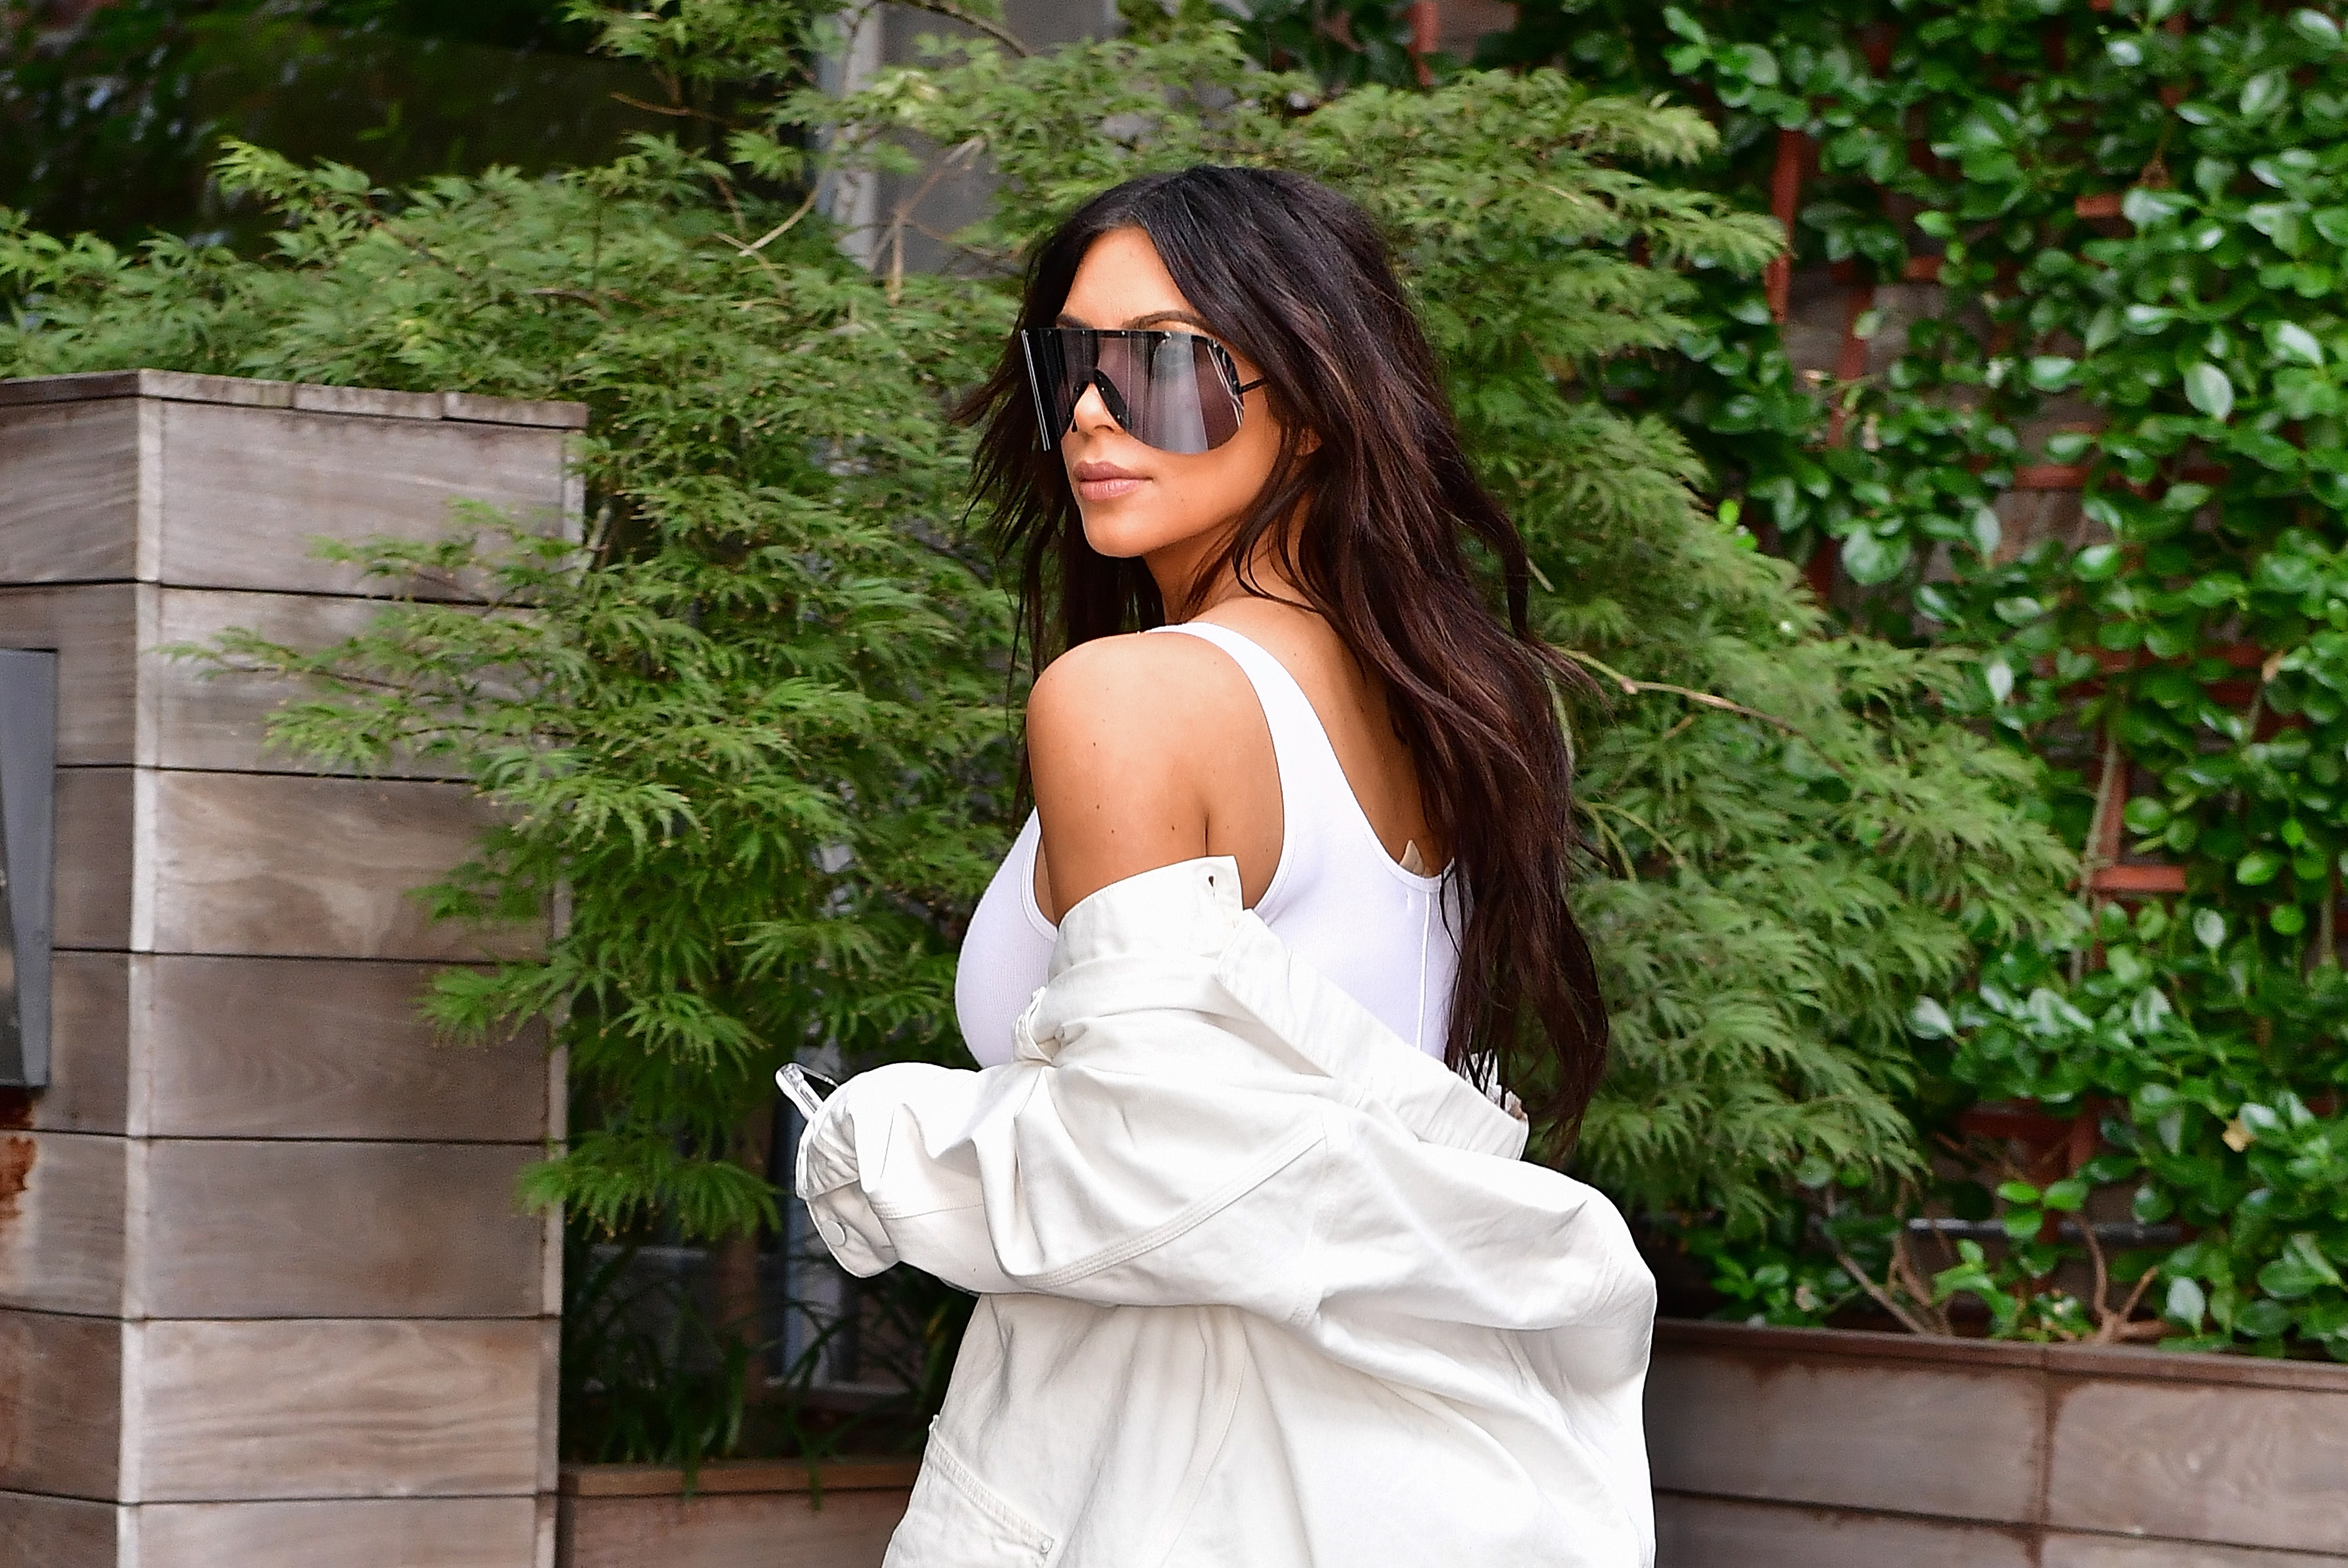 Kim Kardashian SLAYS IT in a casual black corset, leaving us to wonder, where can we get a casual corset?